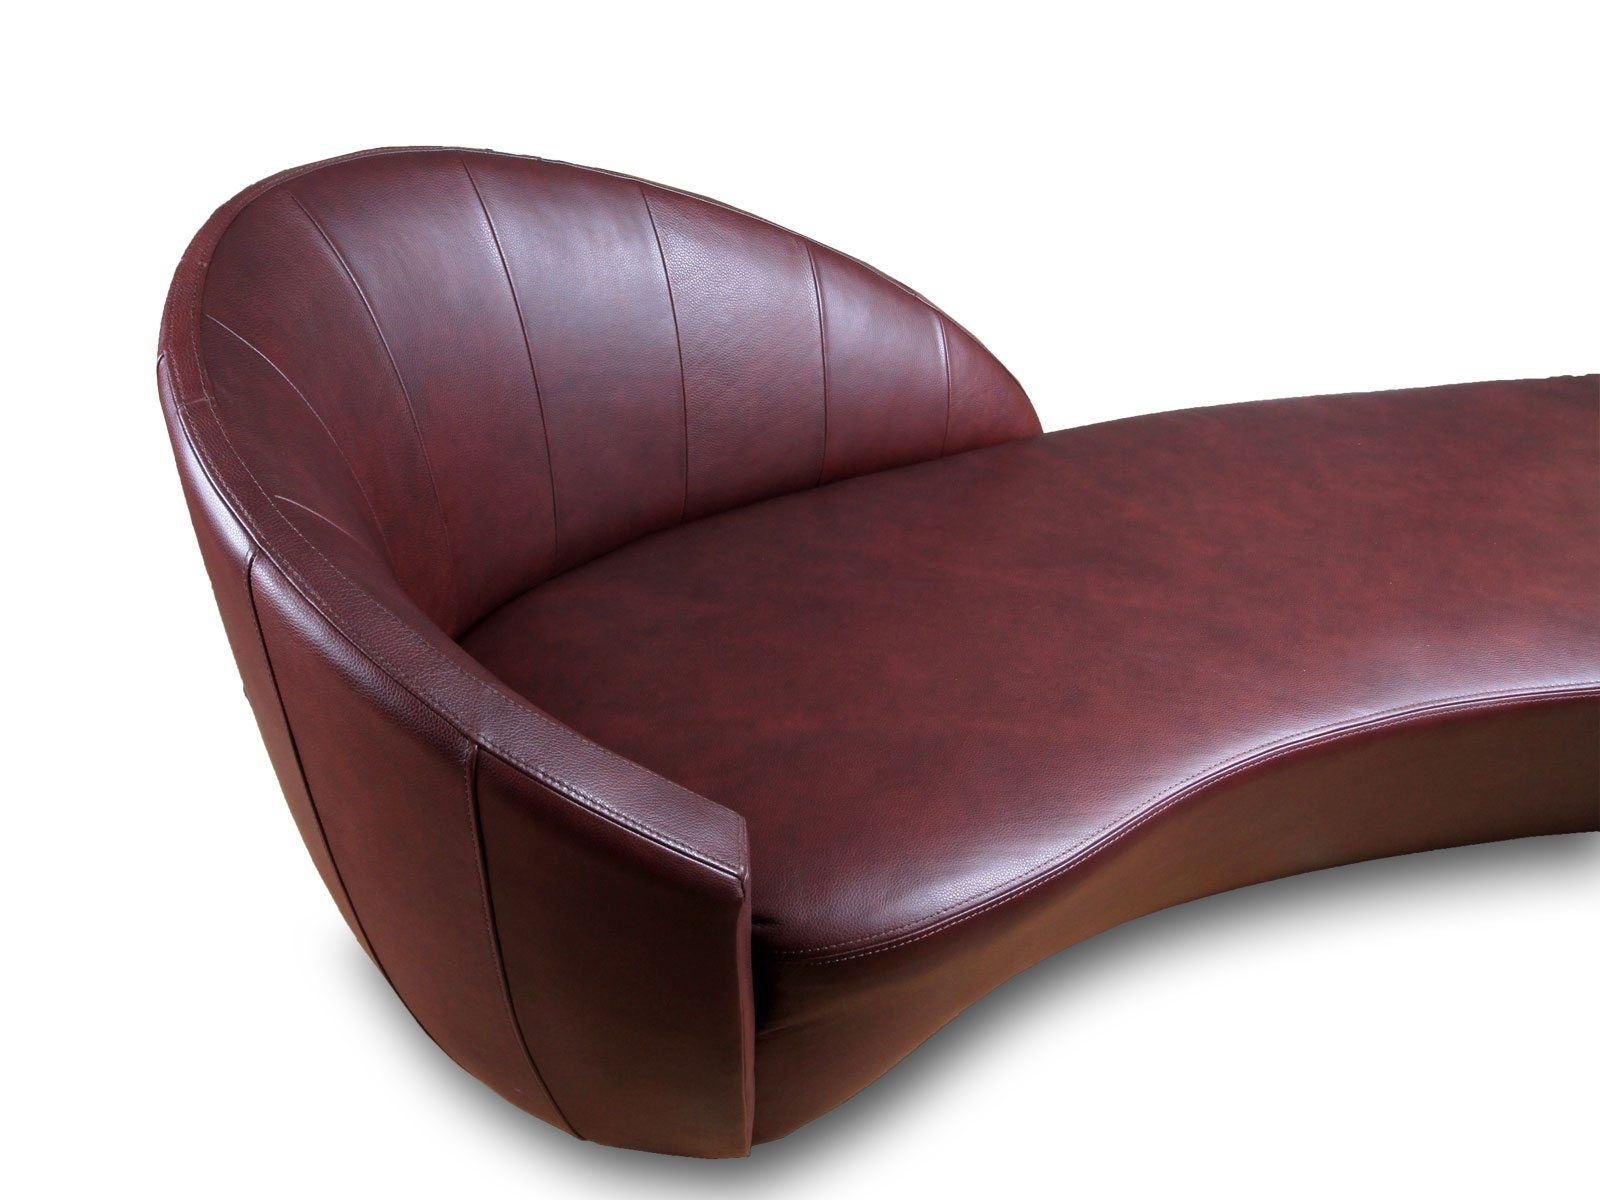 Exceptionnel Chaise Lounge Chair Bobs Furniture